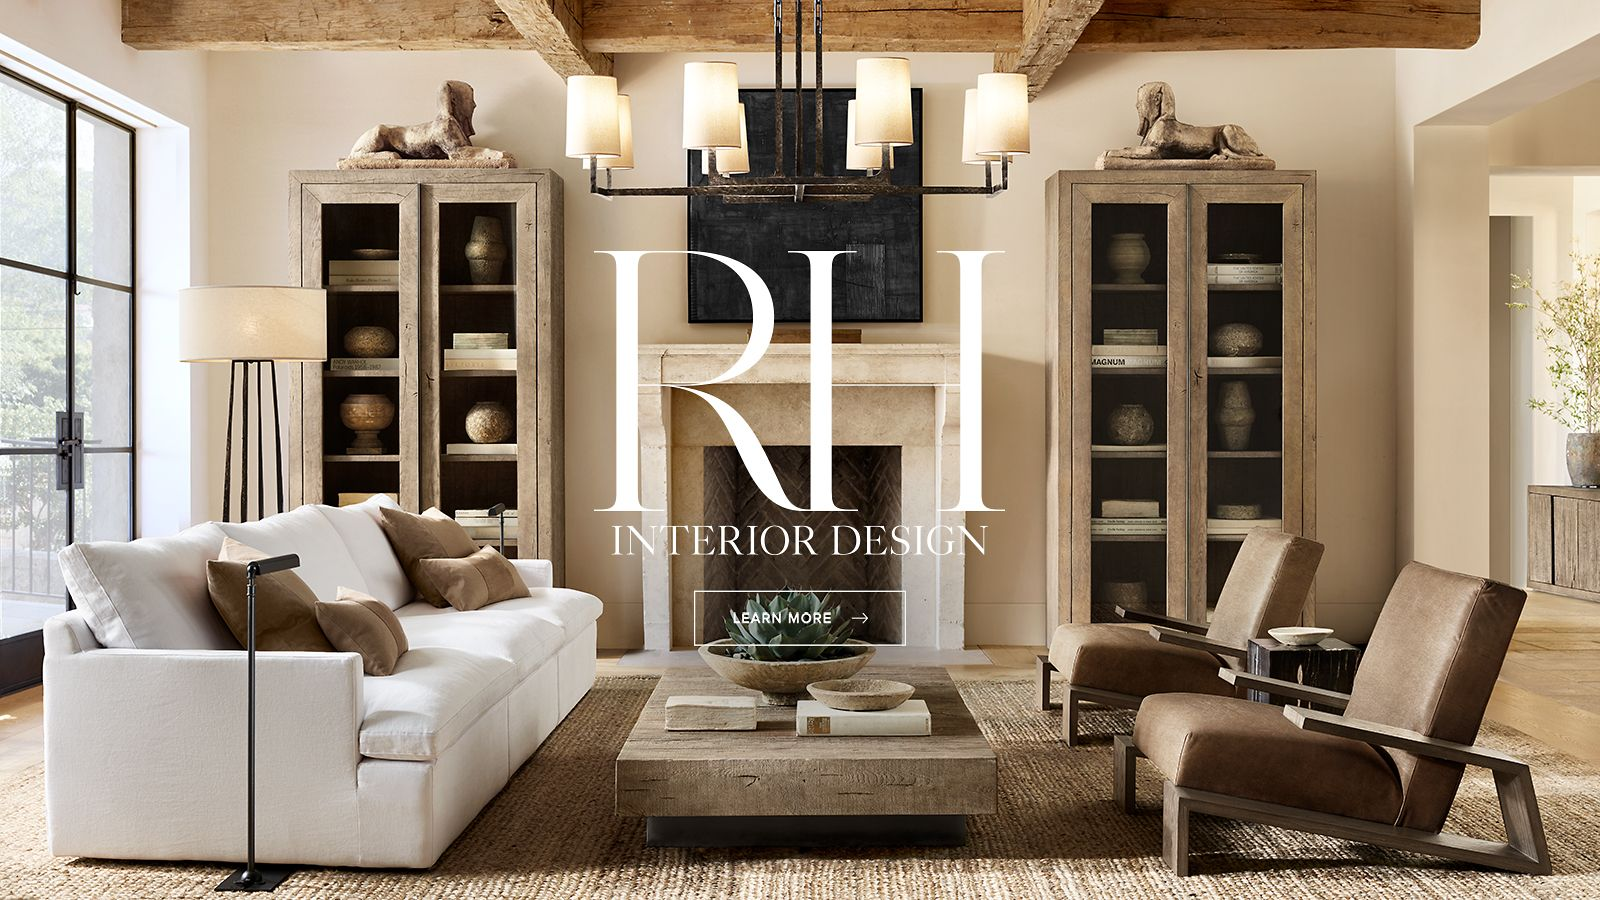 Schedule Your Interior Design Consultation